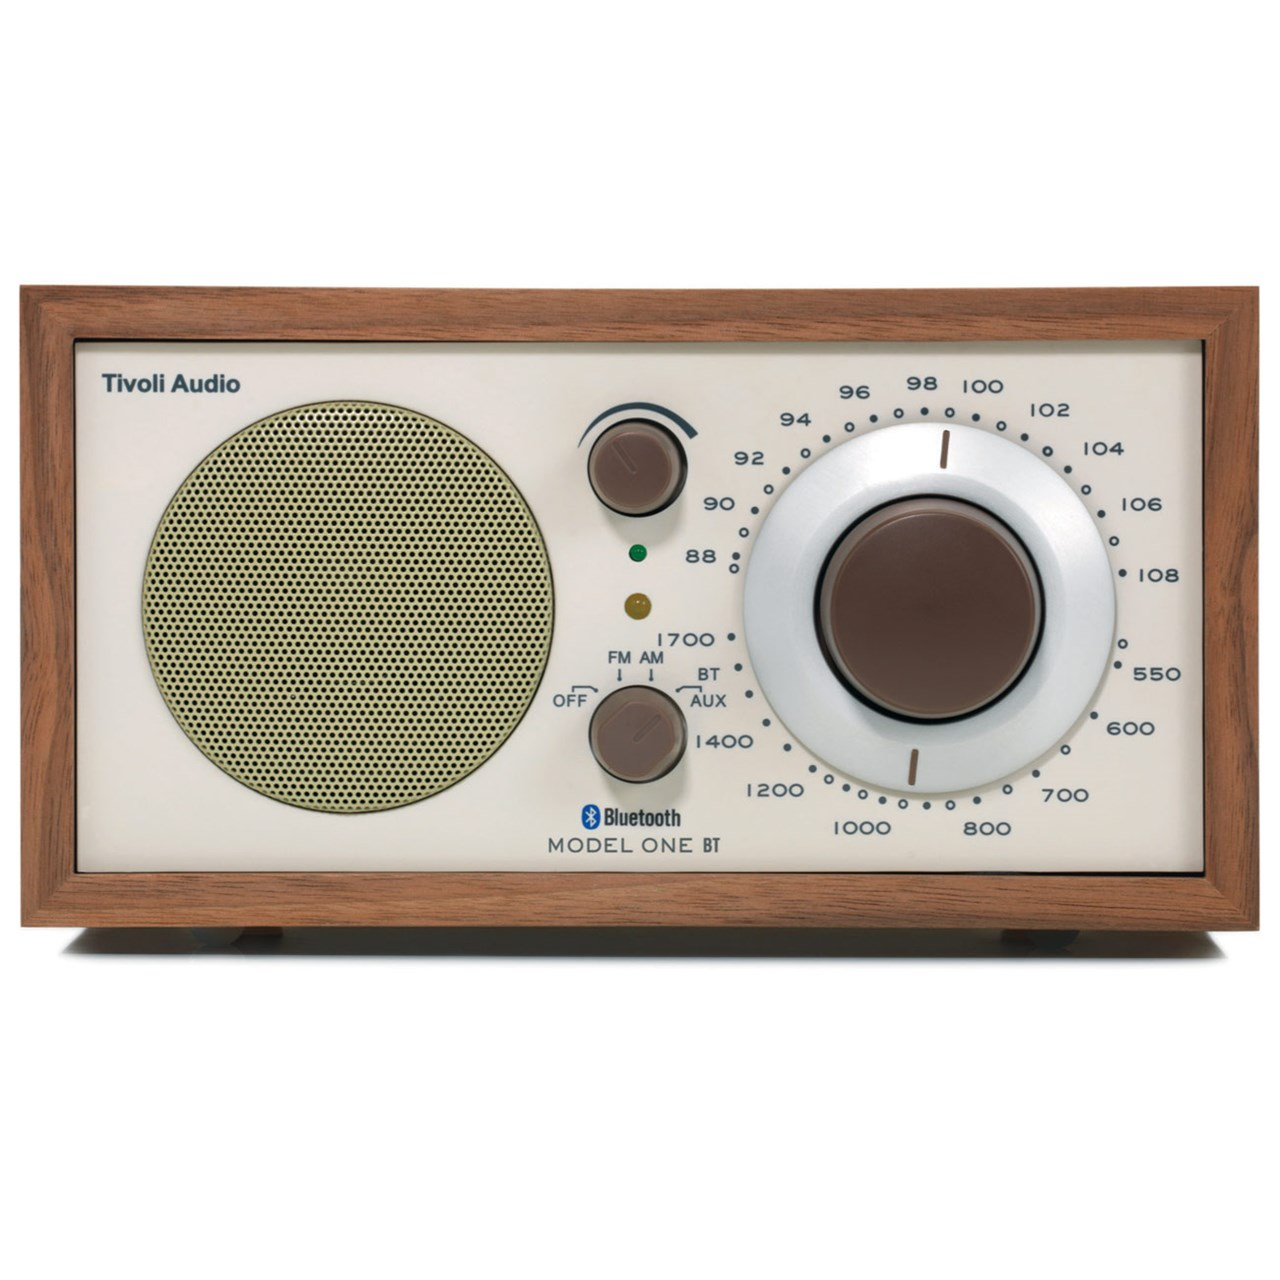 Tivoli Audio Model One Alternative Low Vision Large Dial Bluetooth Am Fm Table Radio